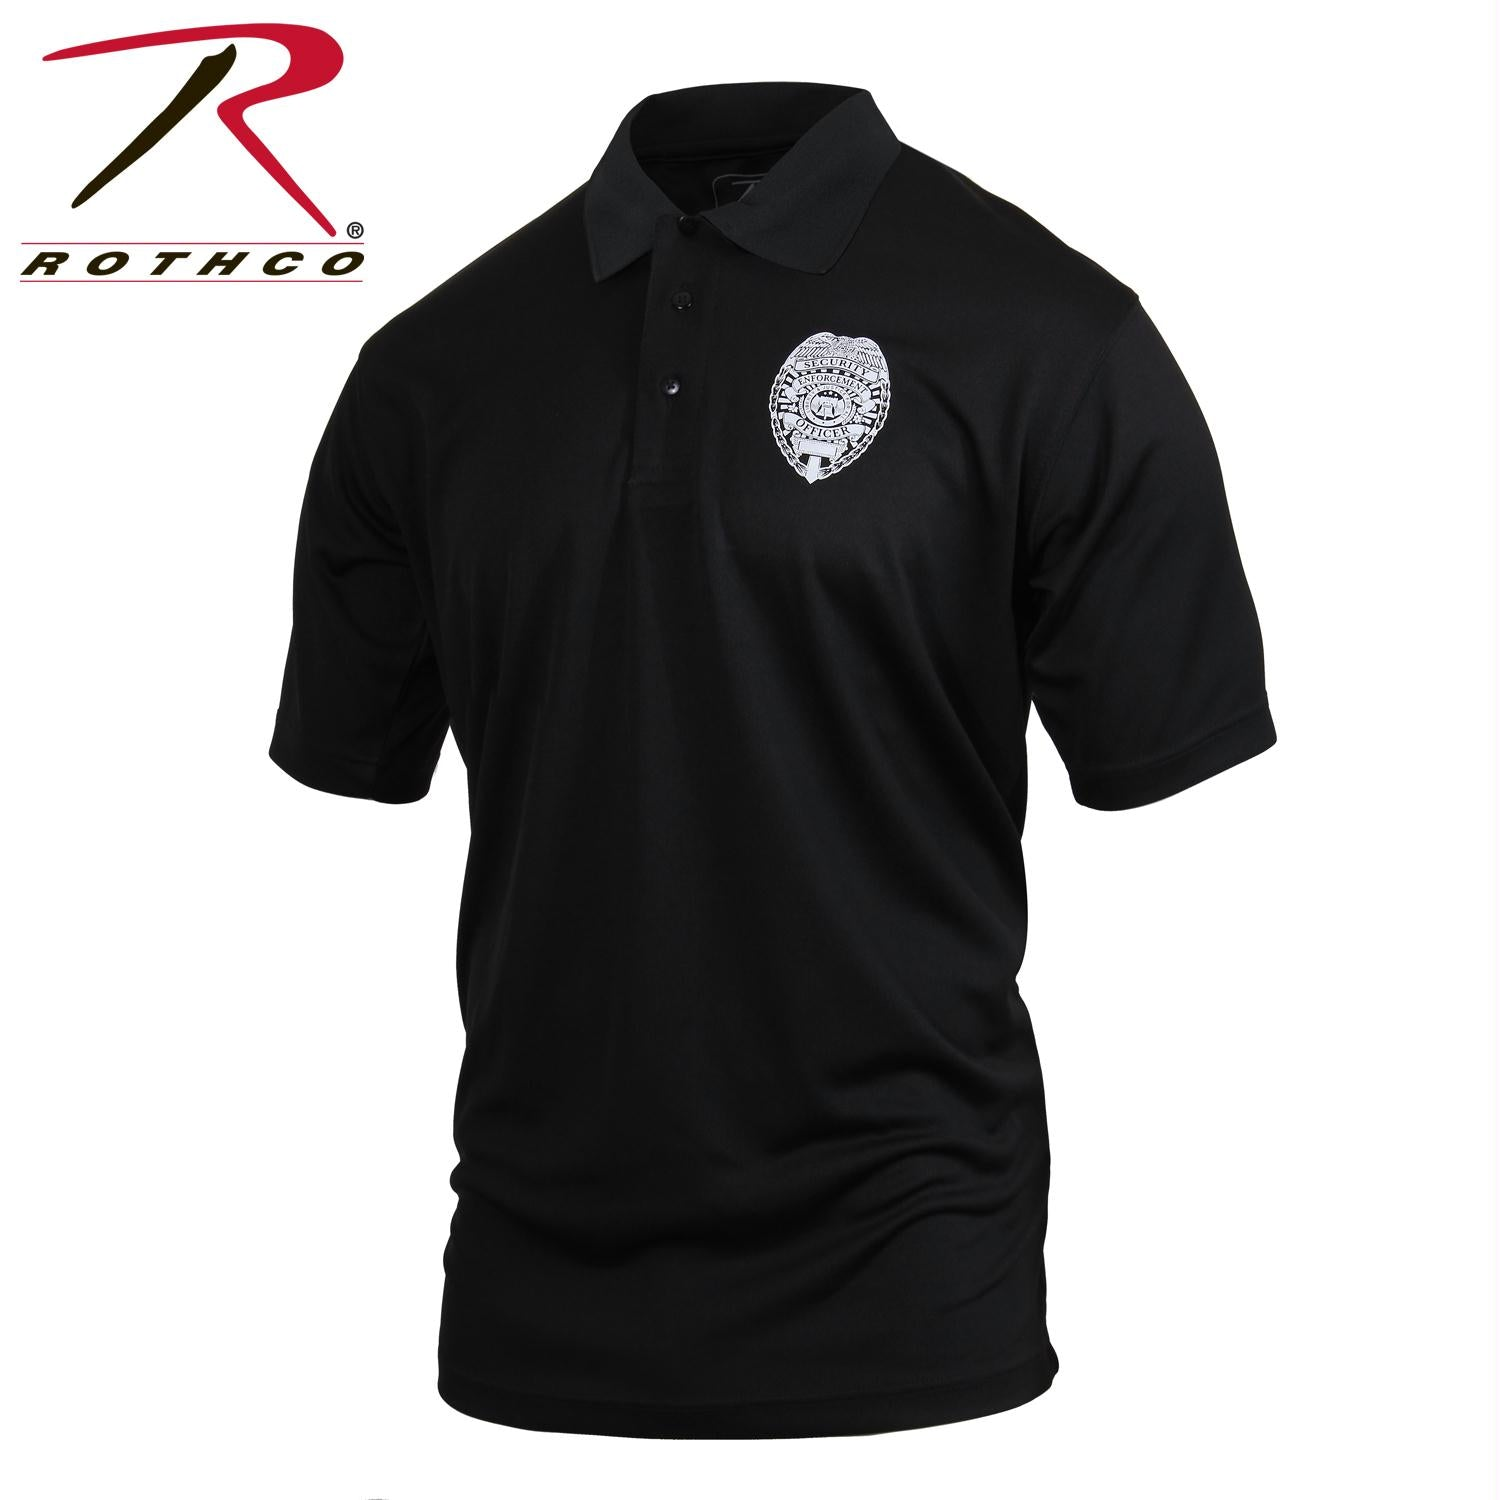 Rothco Moisture Wicking Security Polo Shirt With Badge